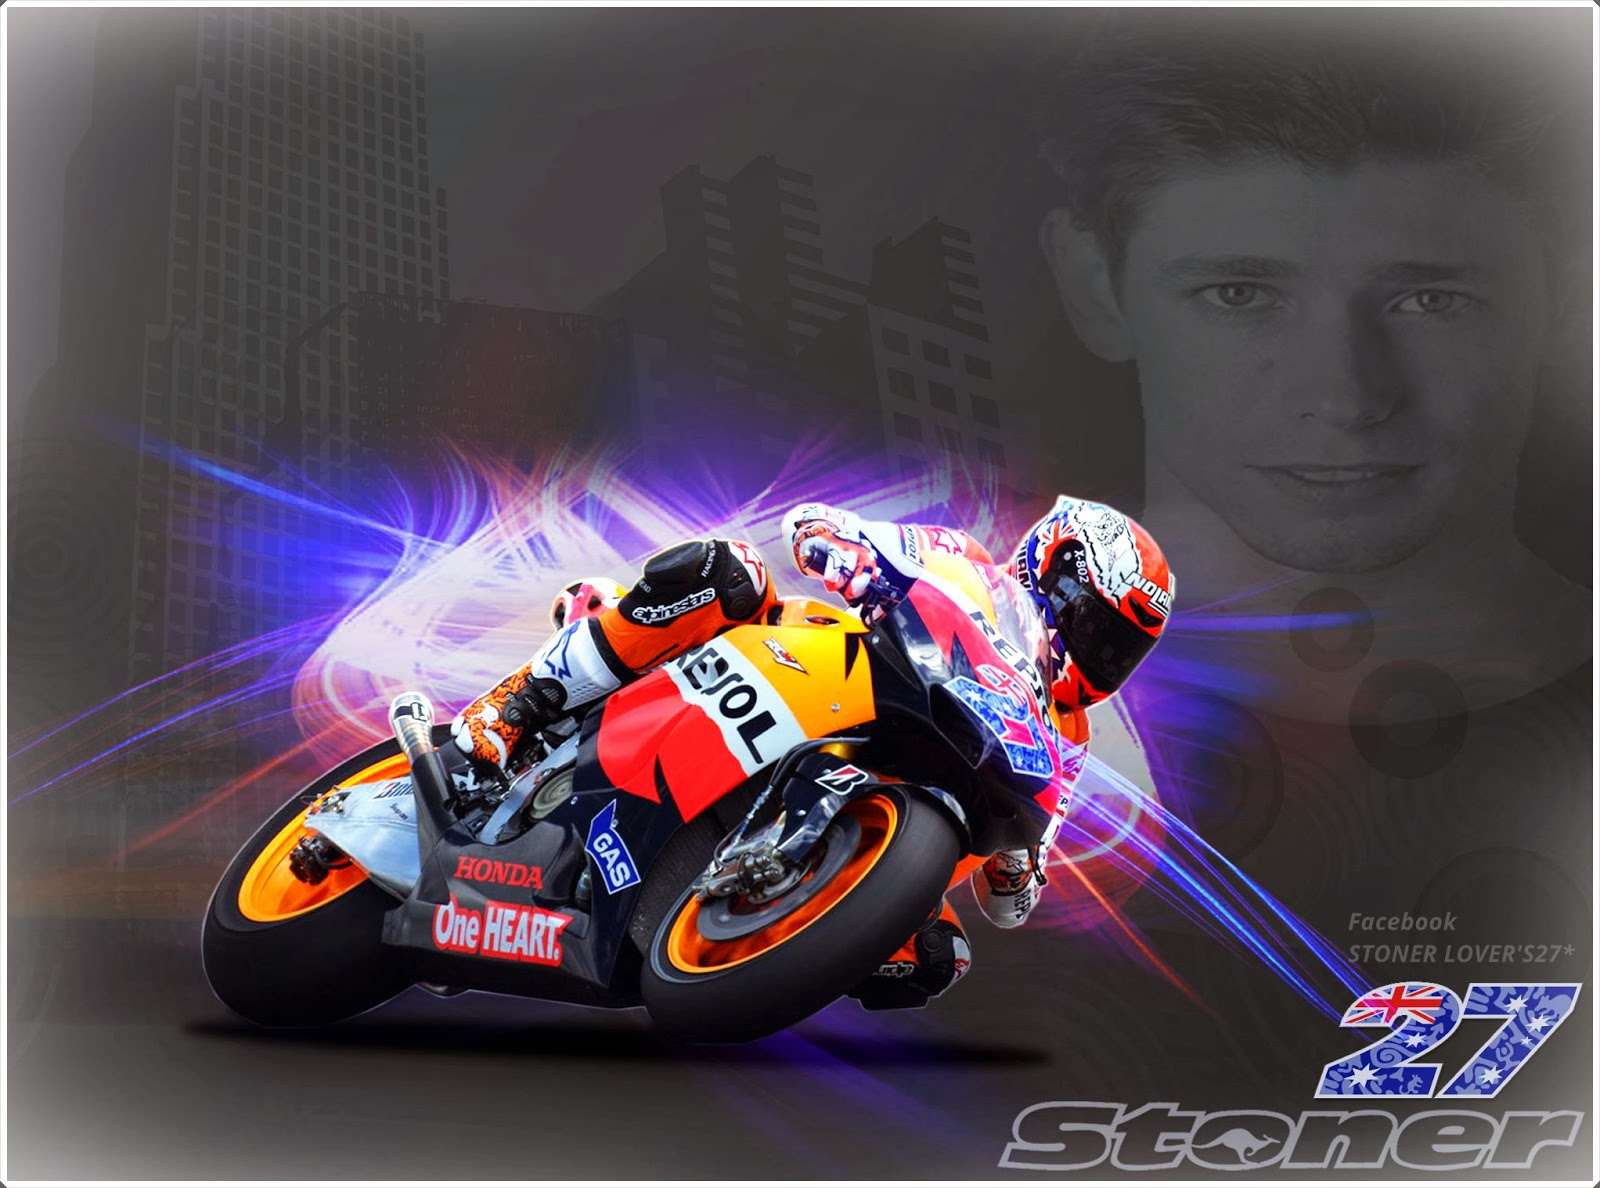 Redi Stoner Casey Stoner Wallpaper Hd